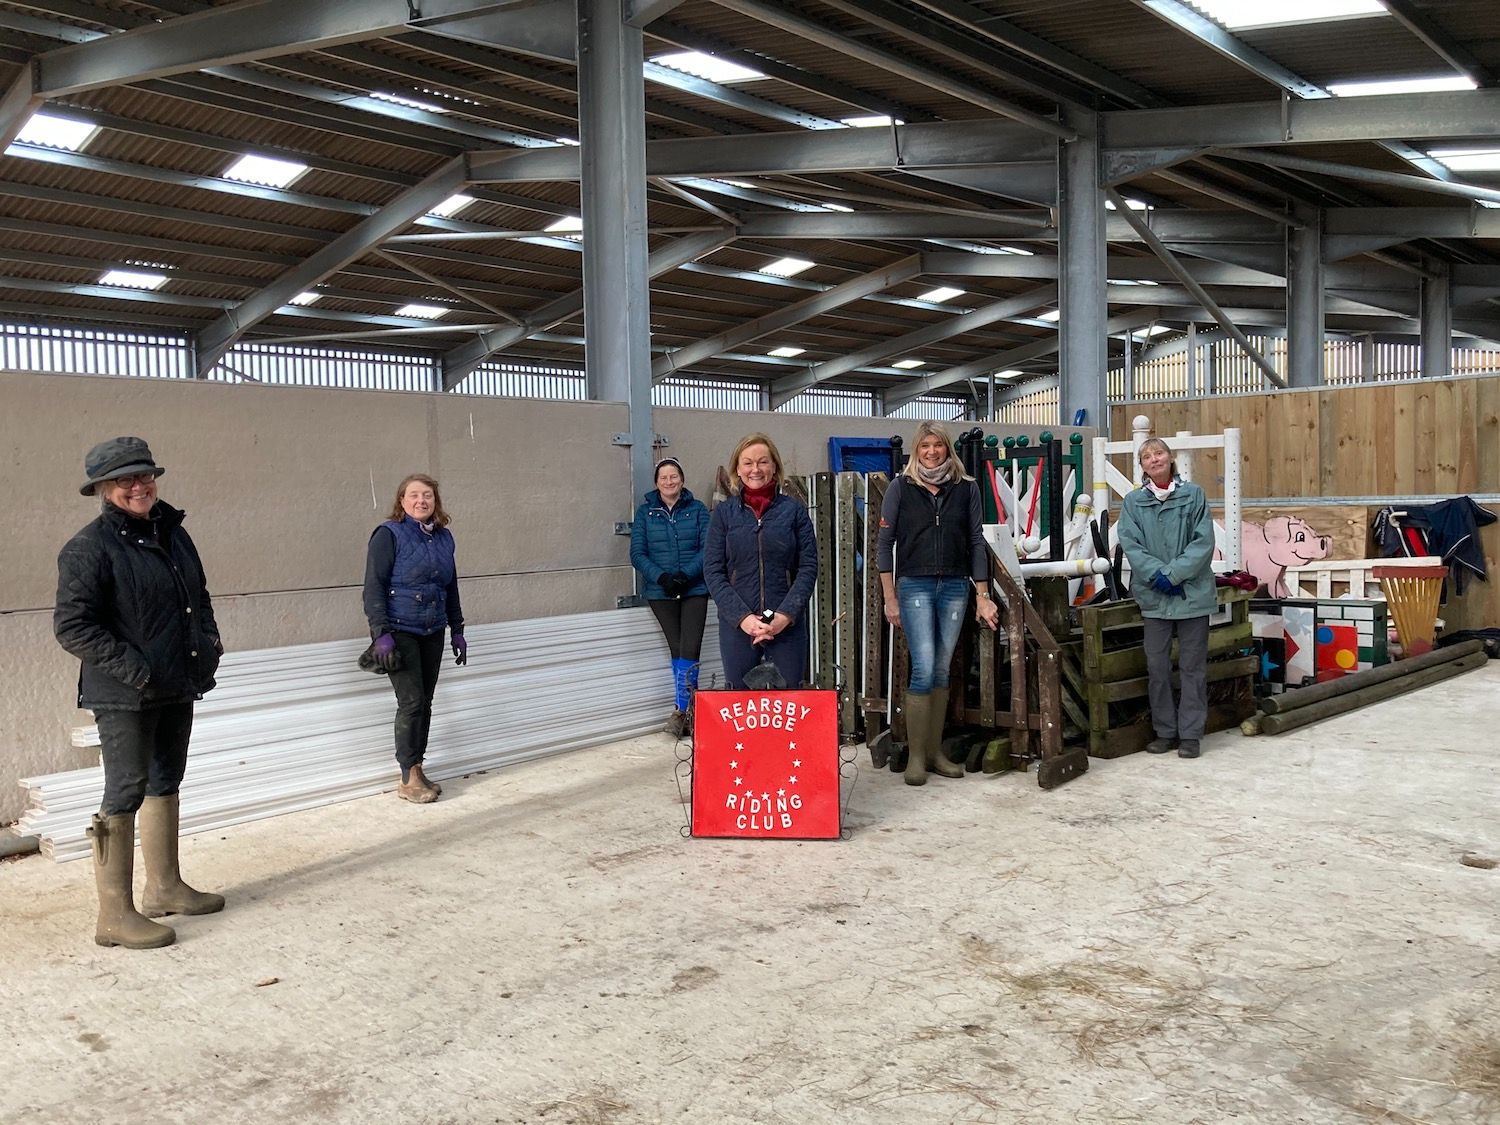 Rearsby Lodge Jumps in Storage